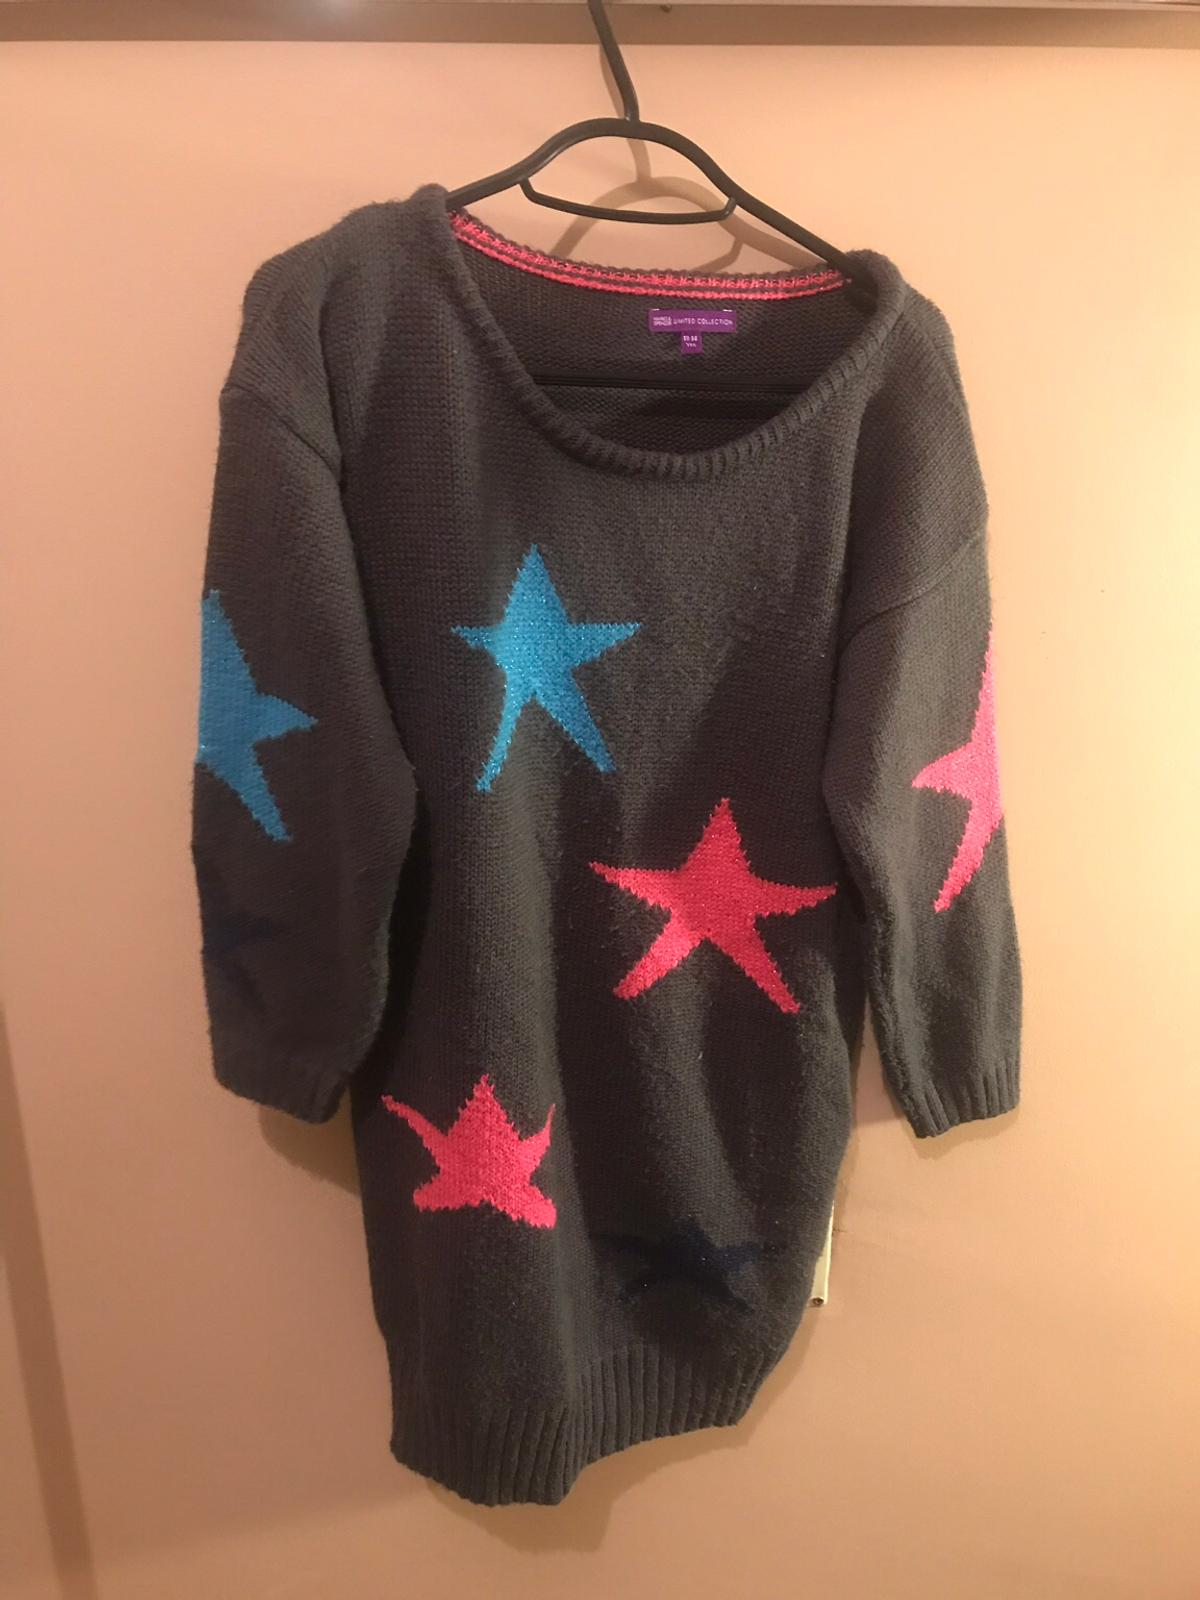 For ages 13-14 but fits a size M